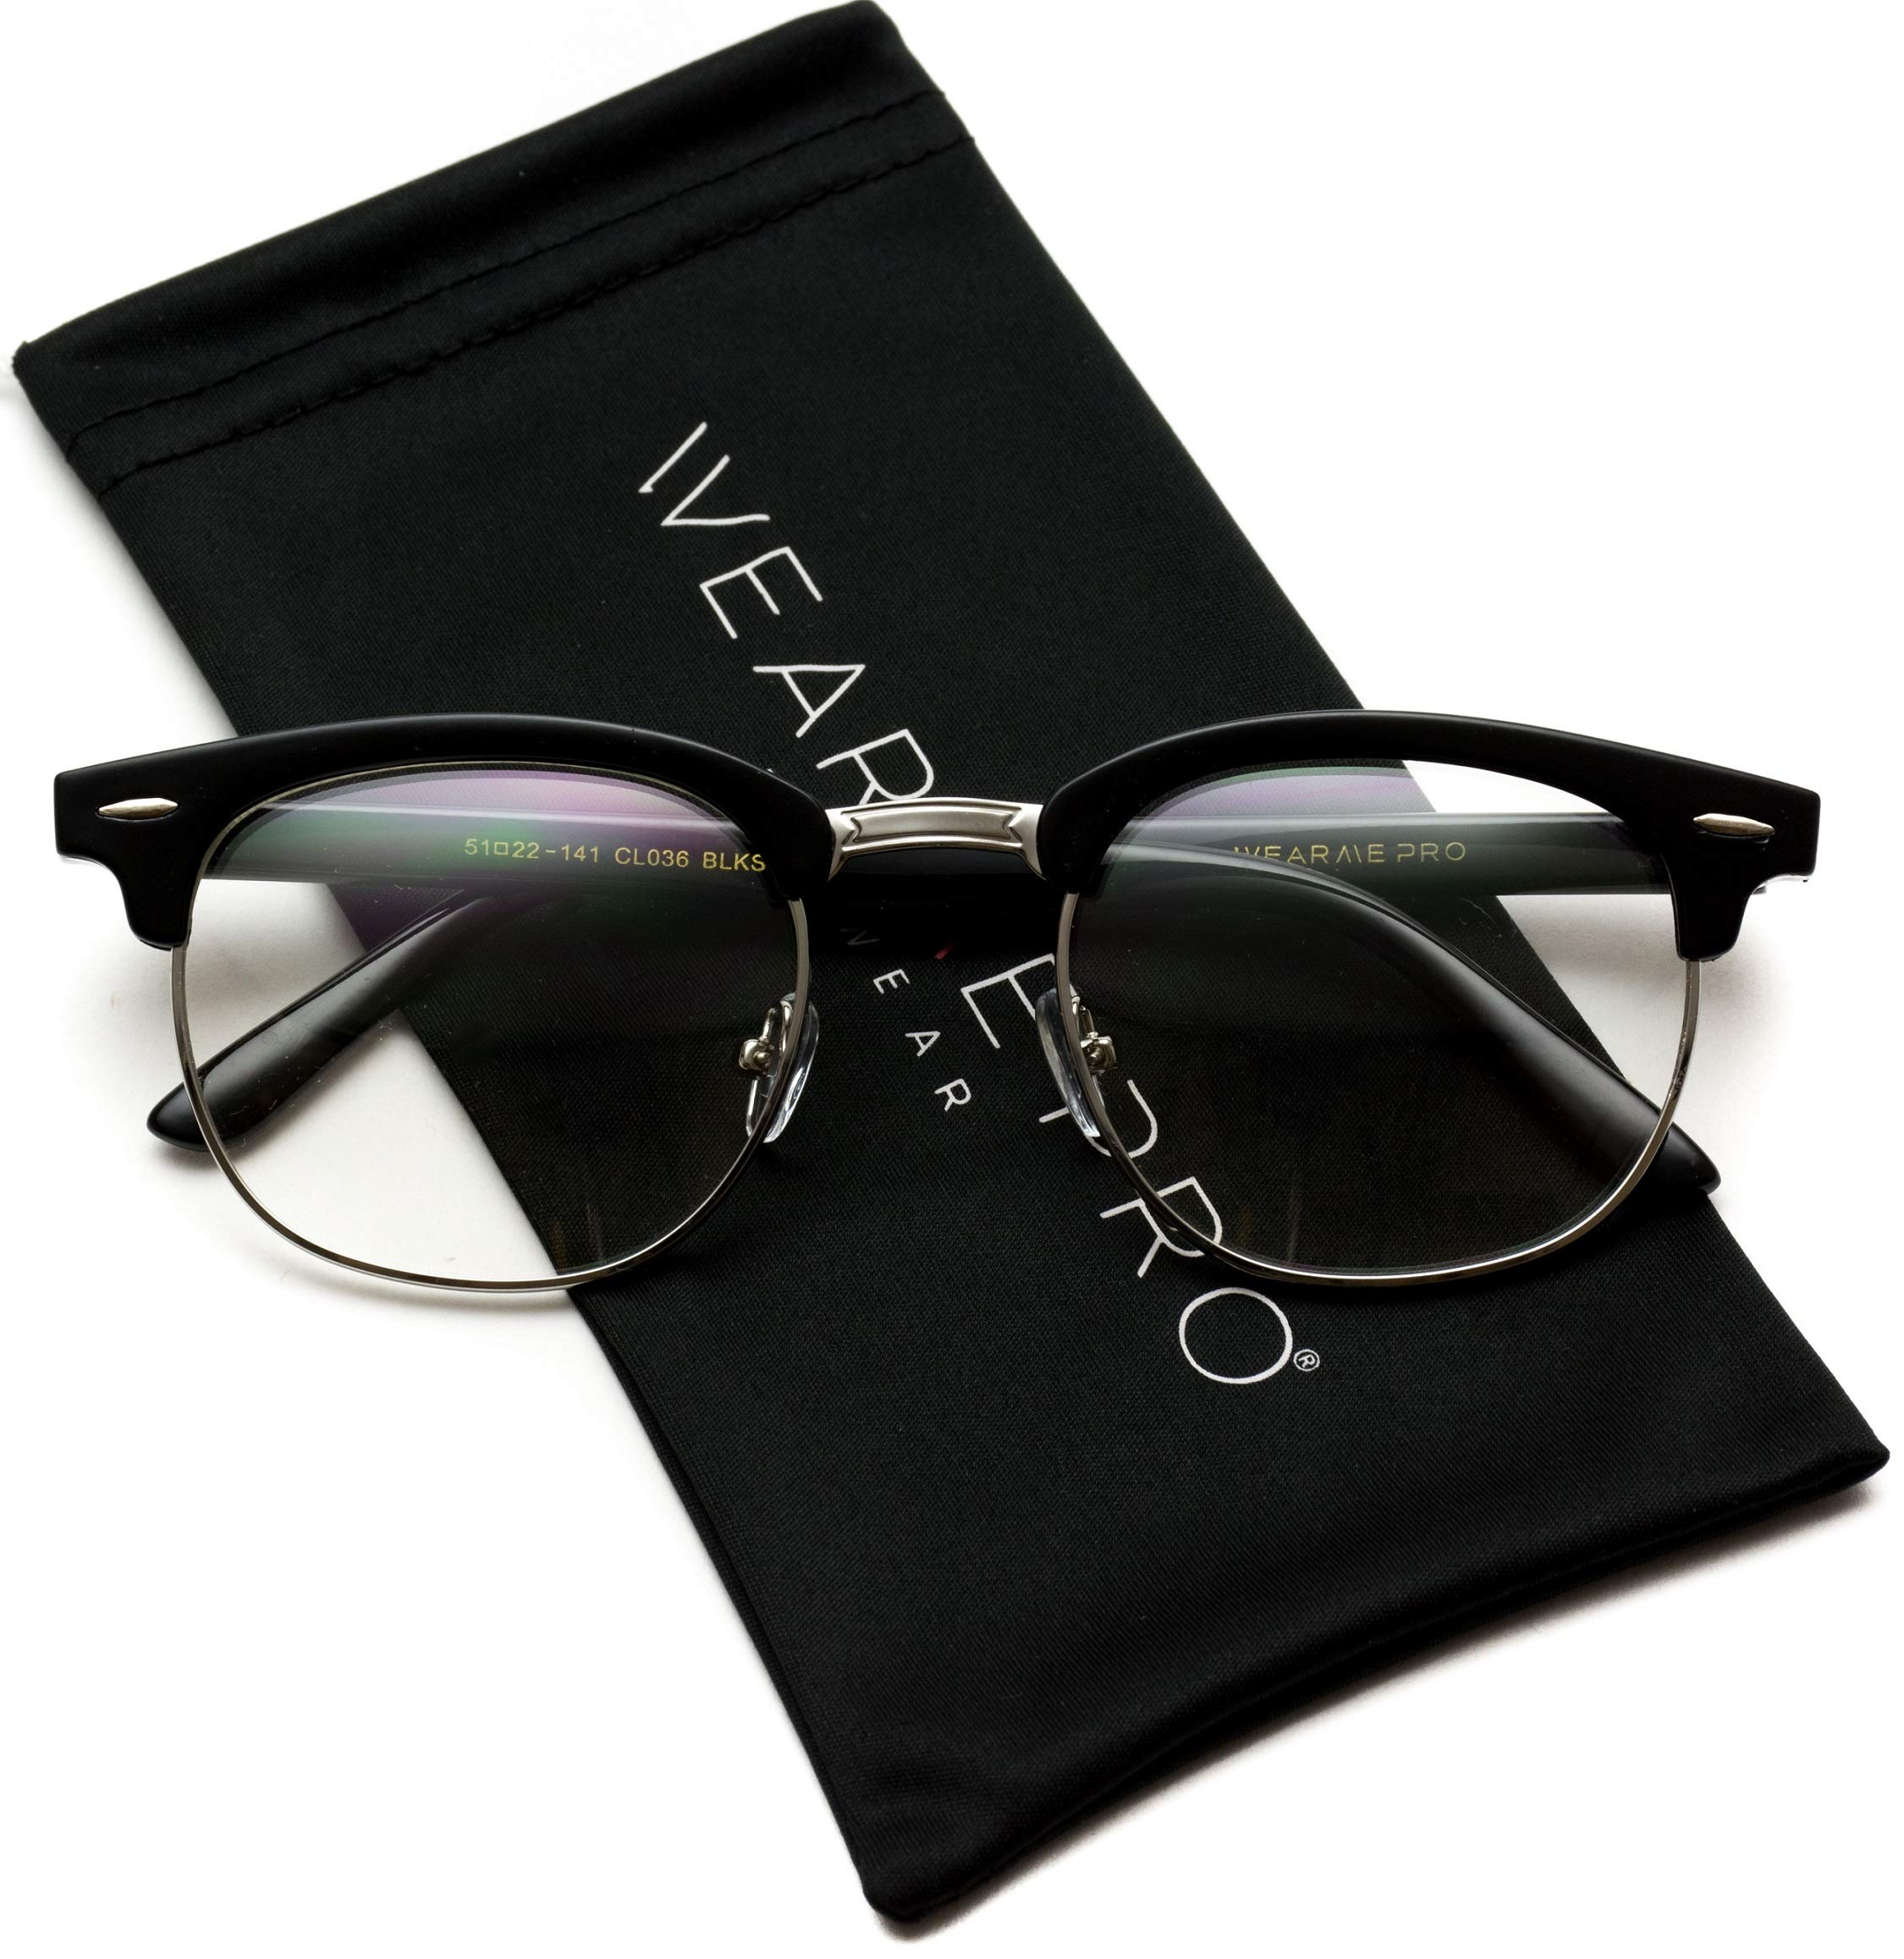 Vintage Inspired Classic Half Frame Horn Rimmed Clear Lens Glasses (Black Silver, 52) by WearMe Pro